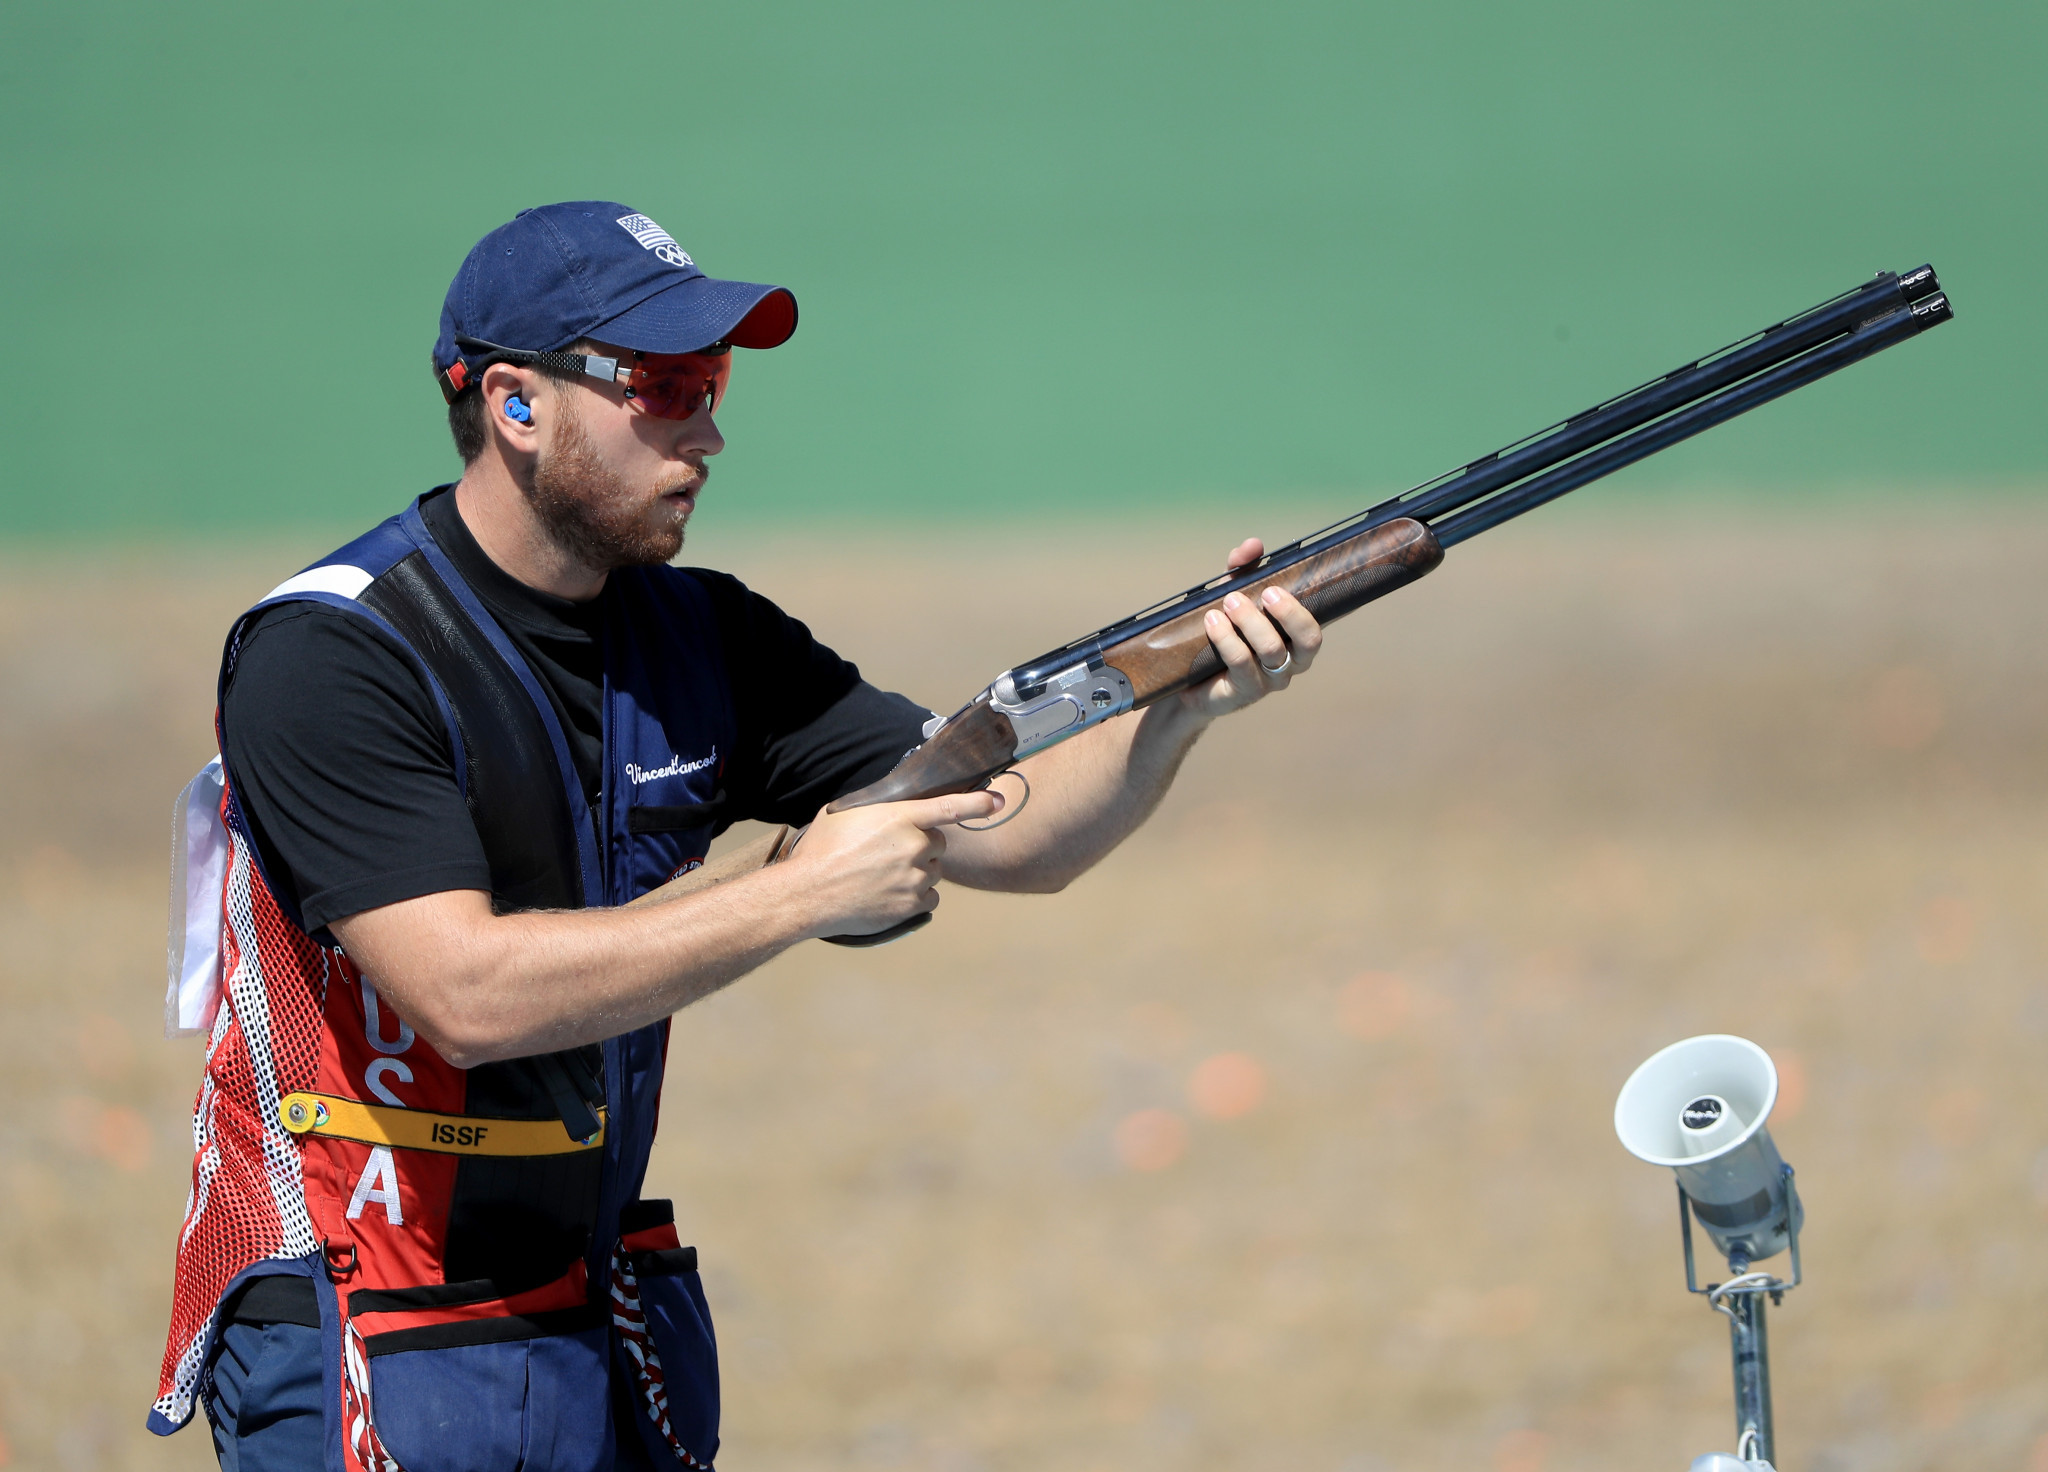 Vincent Hancock of the US equalled the world record in winning his fourth Skeet Men world title in Changwon ©ISSF